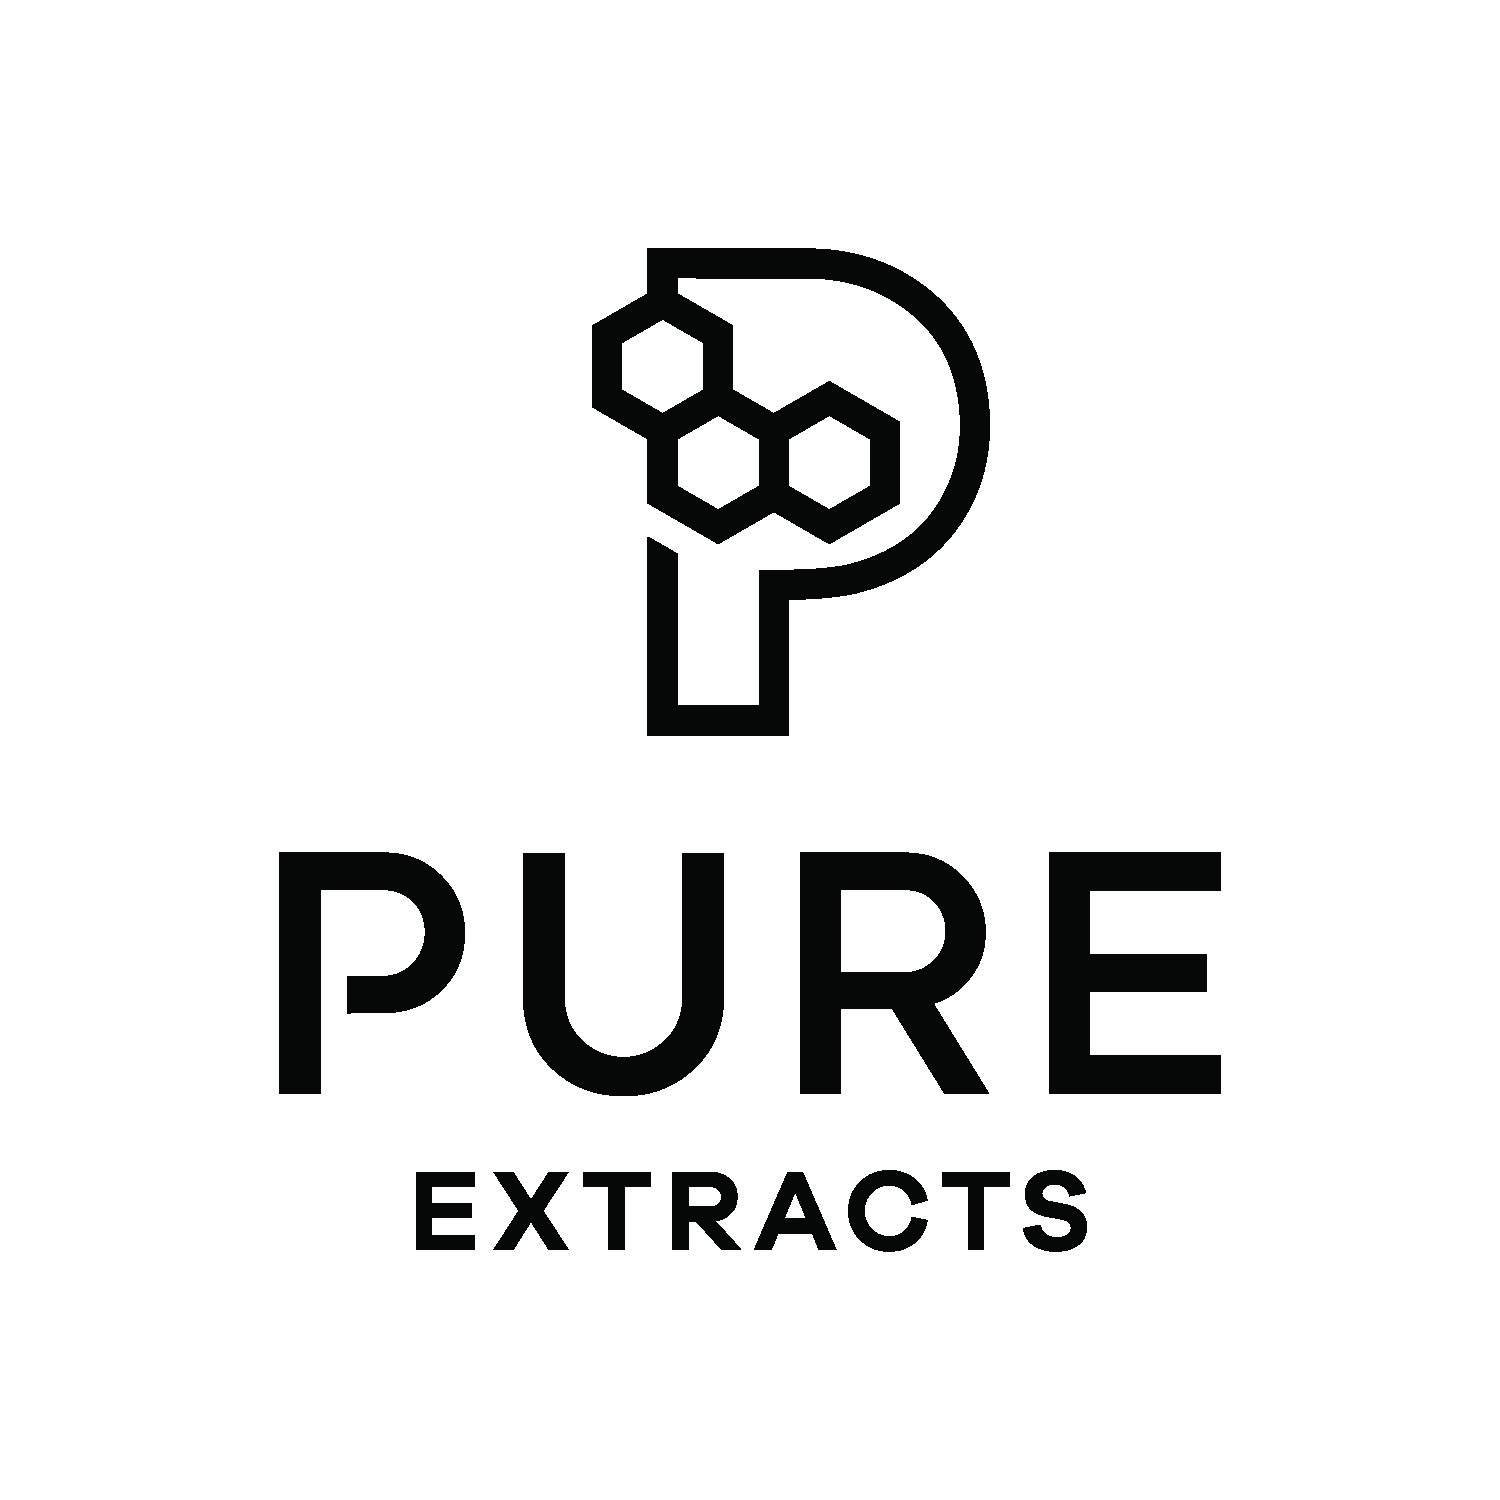 Pure Extracts Collaborates with Dr